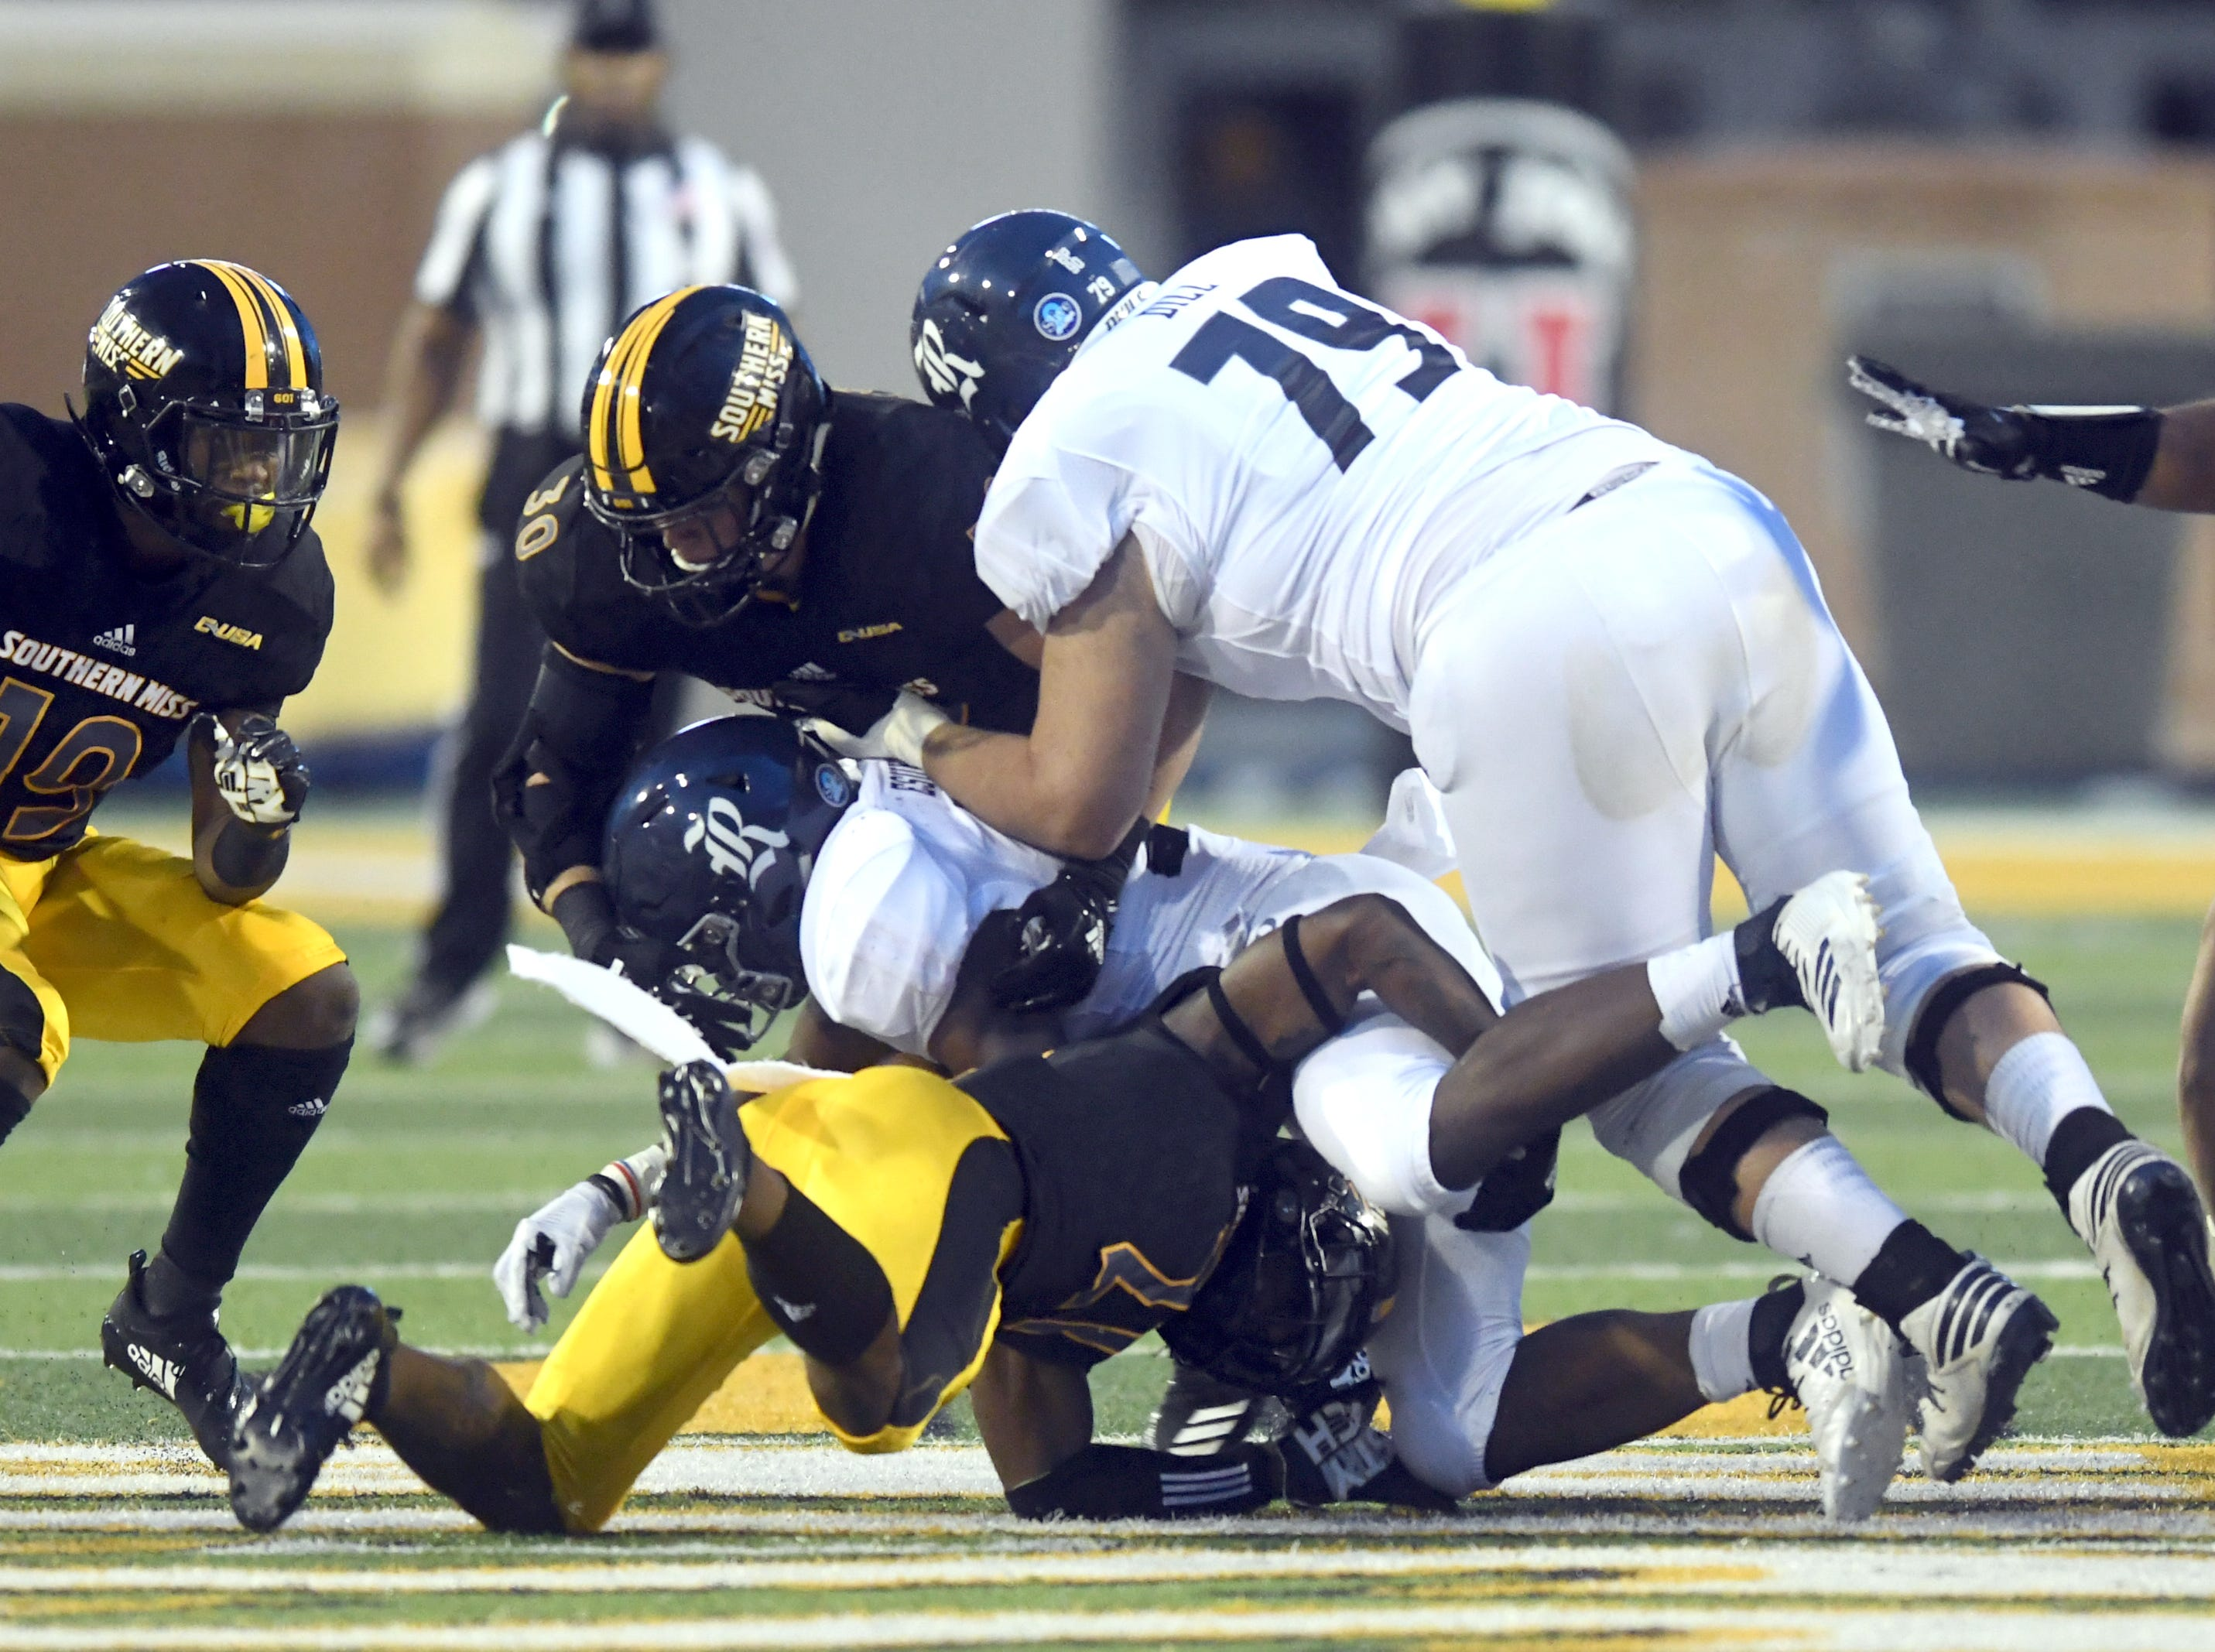 Southern Miss defensive players make a stop in a game against Rice at M.M. Roberts Stadium on Saturday, September 22, 2018.